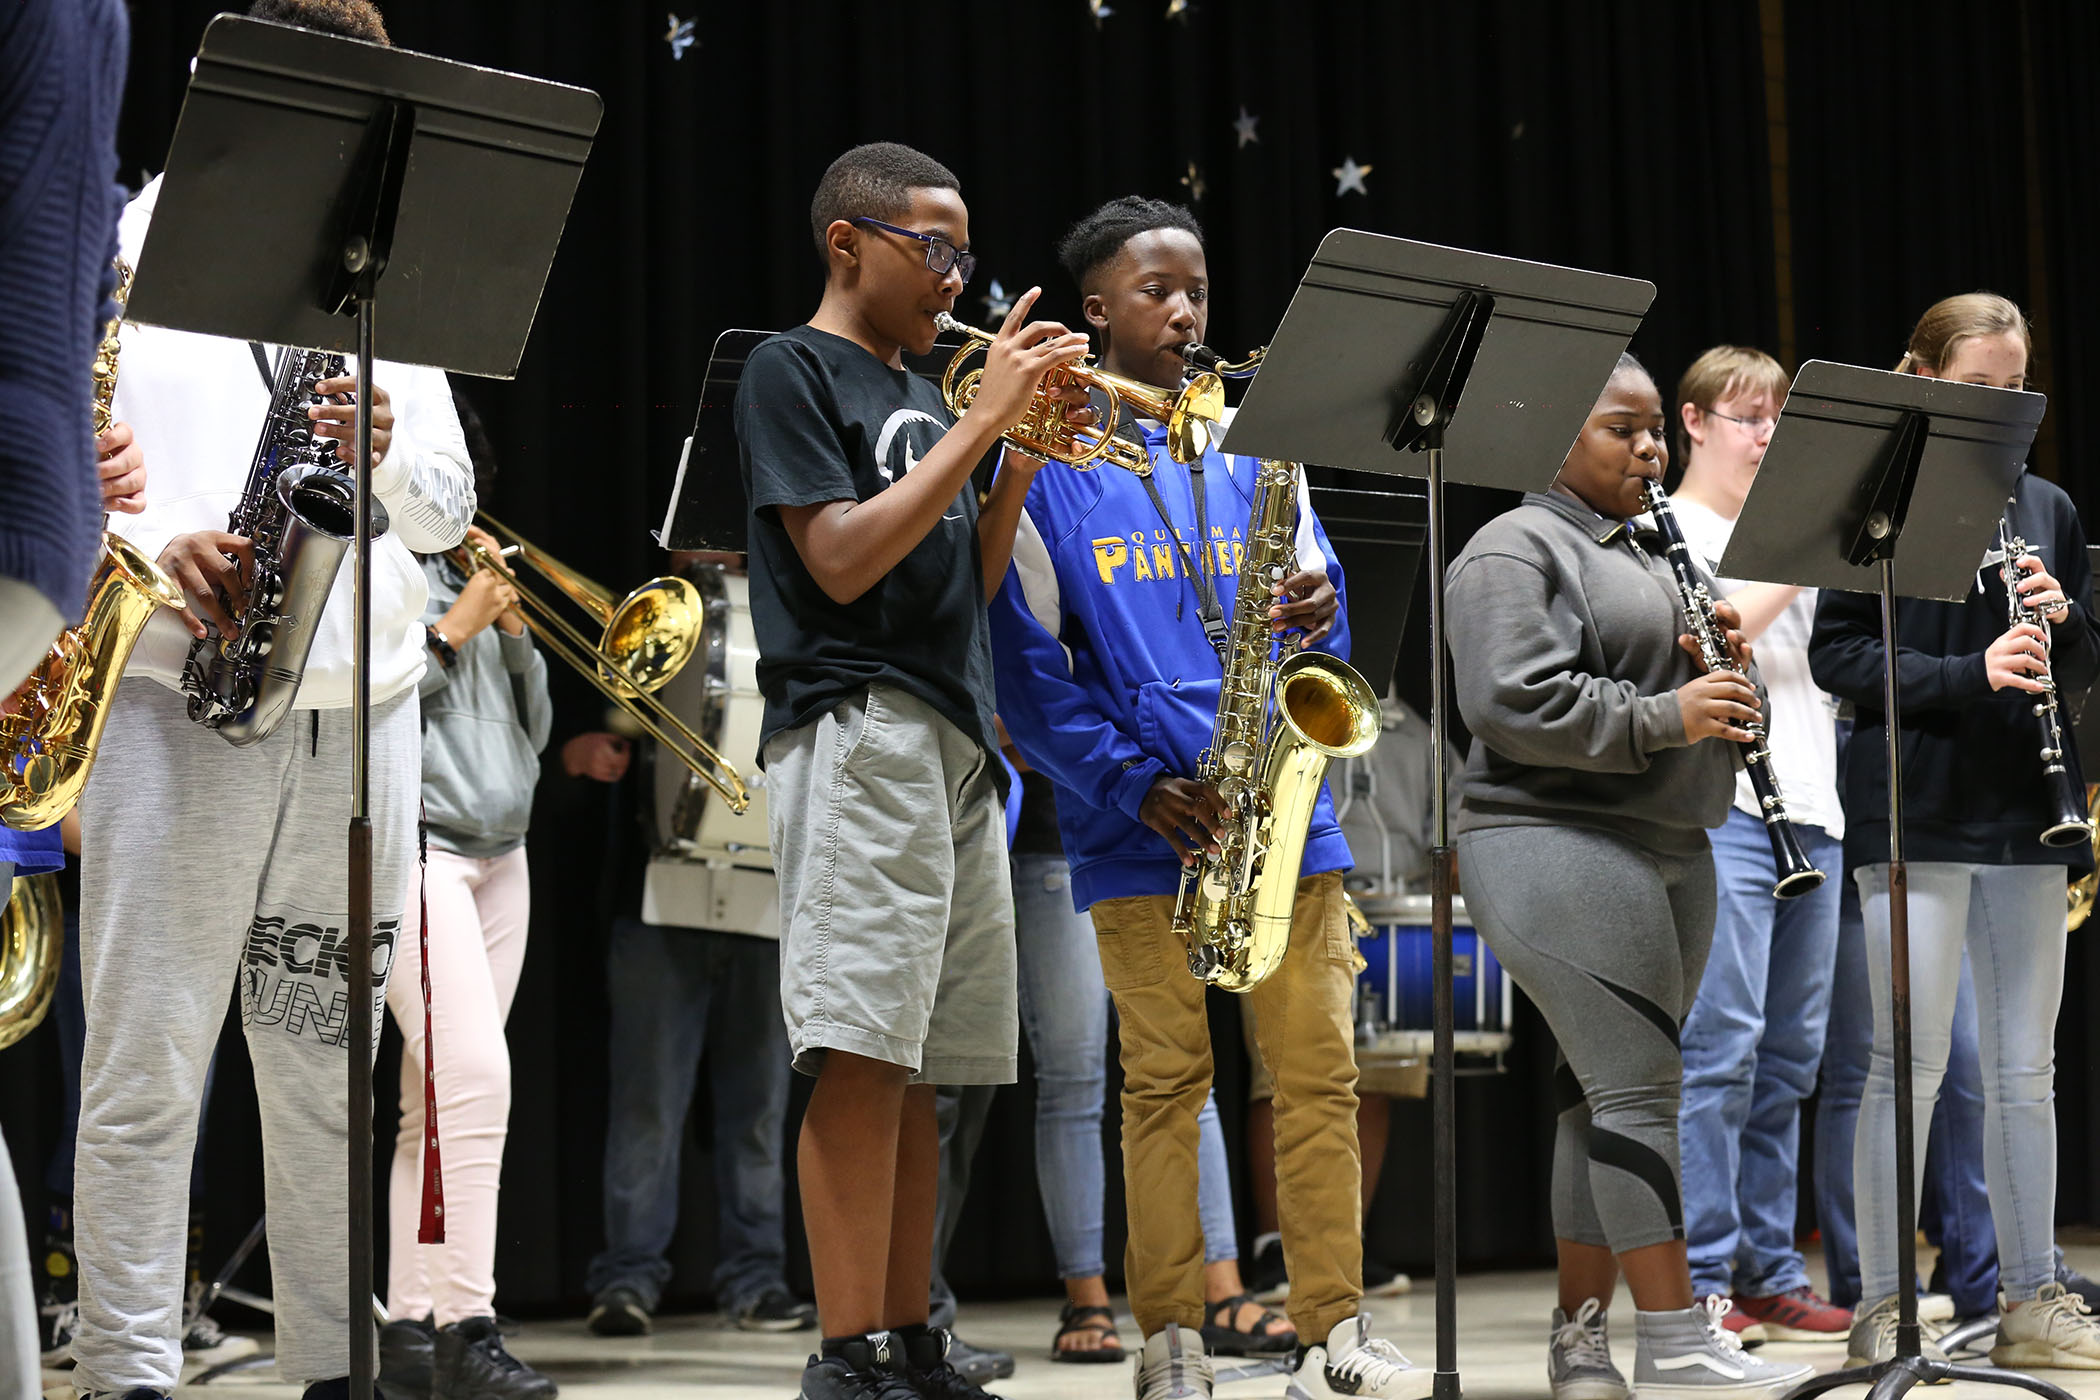 QJH band students perform on stage.